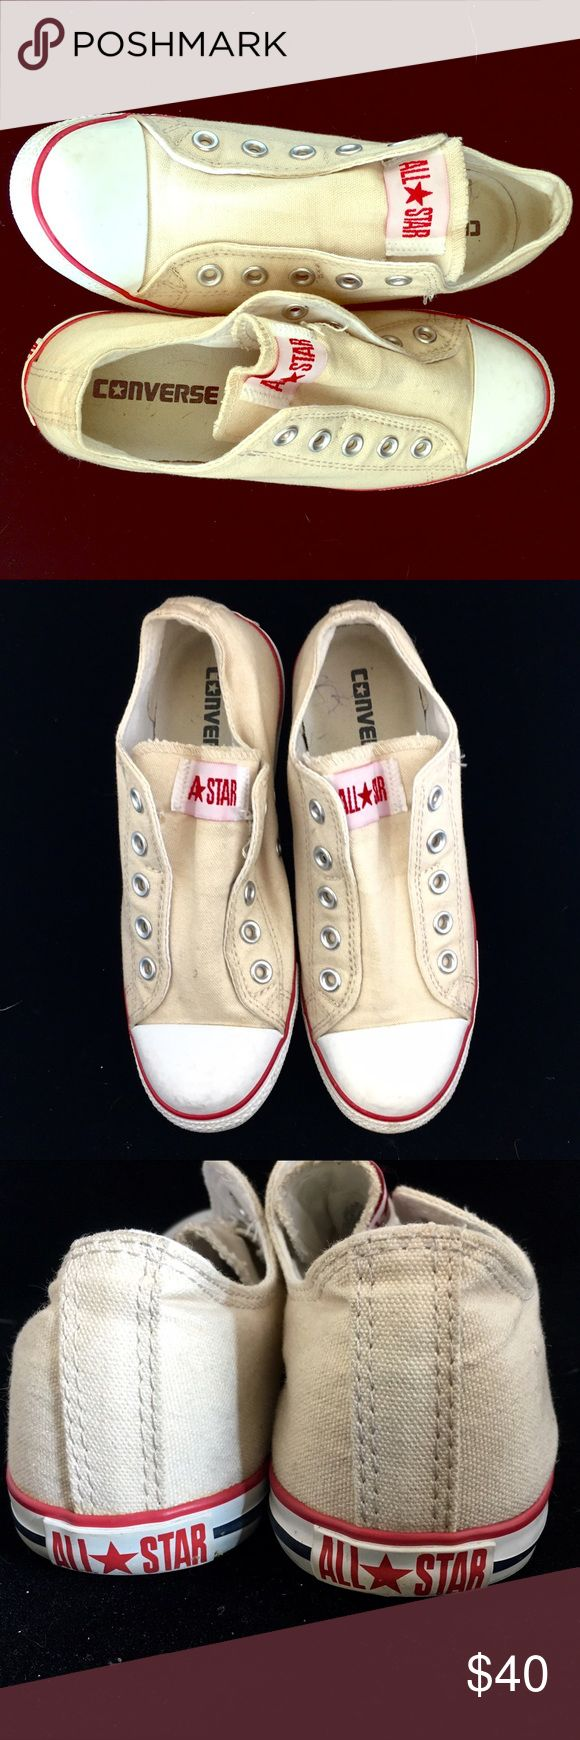 🌸REDUCED🌸Converse Slim Slip-On Sneakers Converse Classic canvas sneaker in a slip-on style. Slim version for a stylish and streamlined look. Textile upper and lining. Rubber soles. By Converse in cream/ beige color. Pre-owned worn twice. No box. Women's Size  6.5. Converse Shoes Sneakers